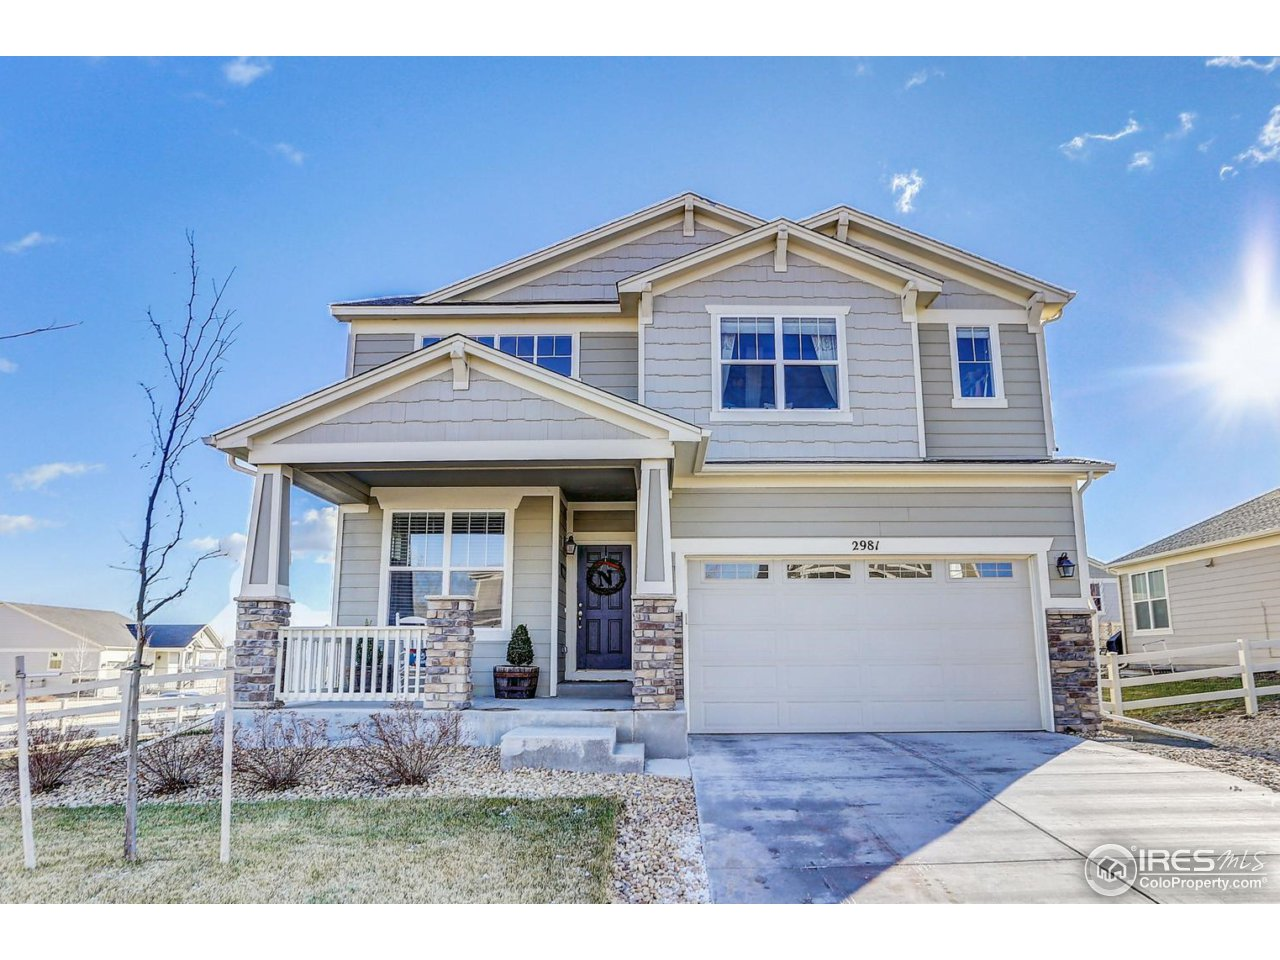 2981 Haflinger Dr, Fort Collins CO 80525